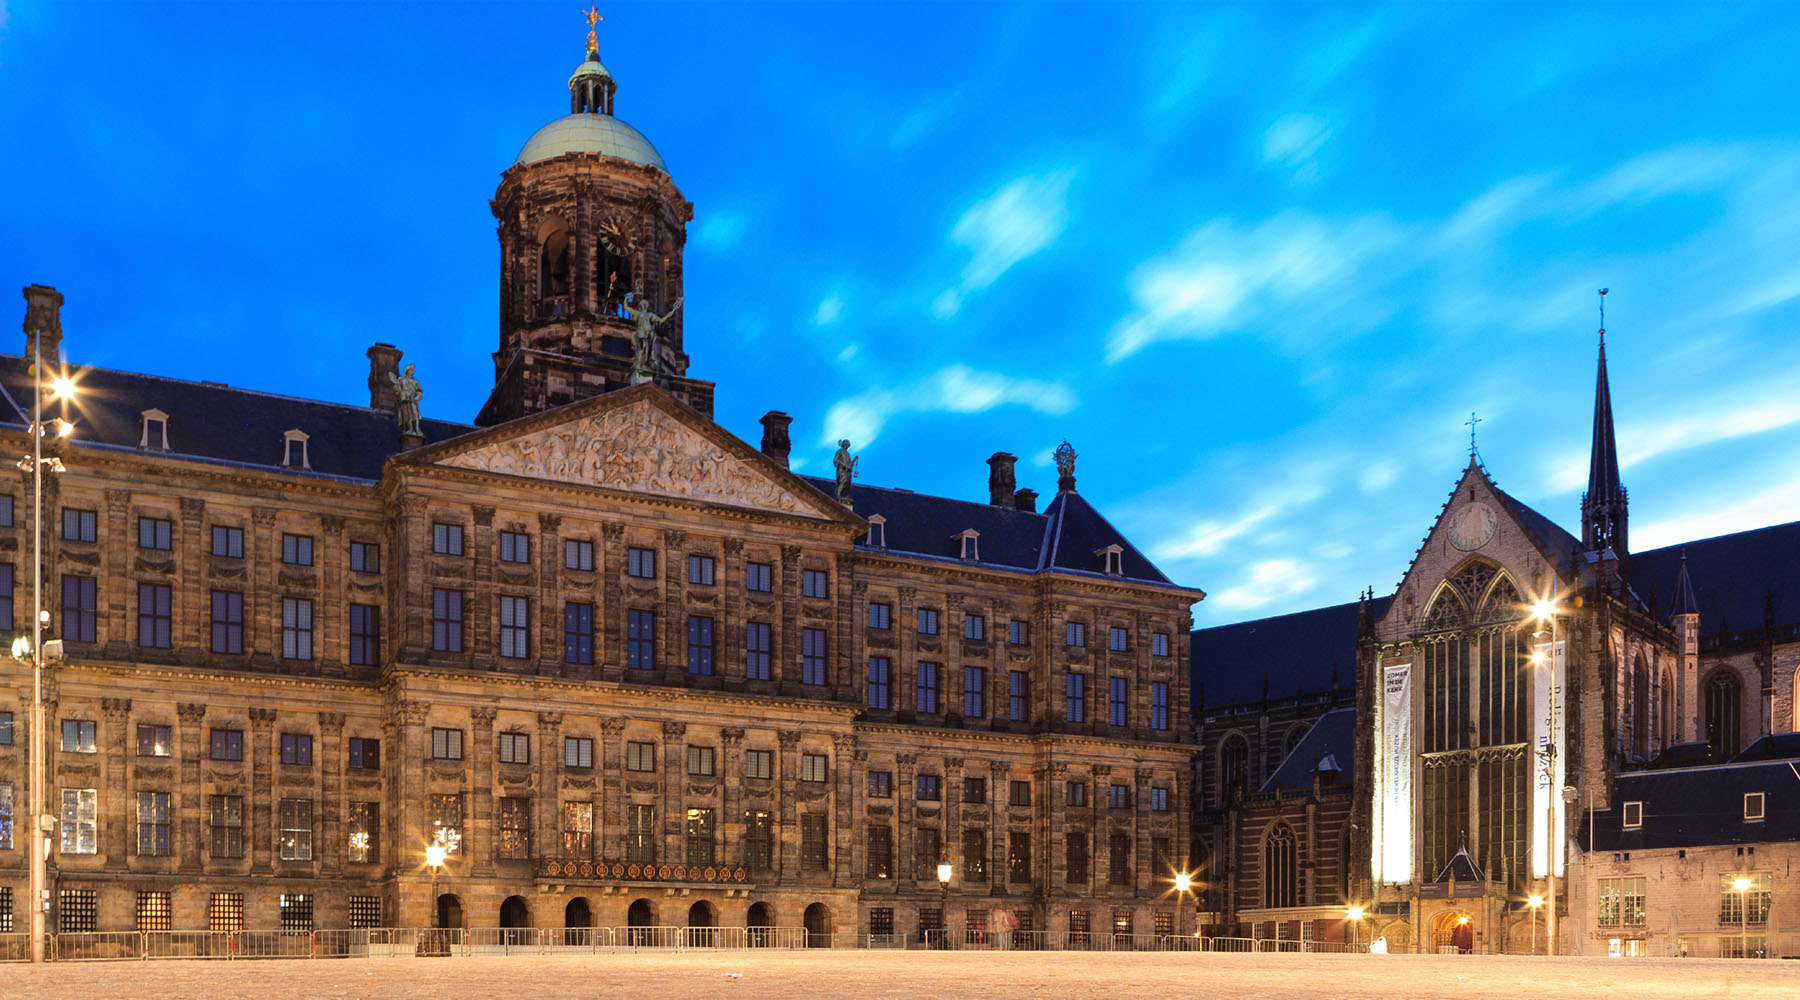 Museums of Belgium and The Netherlands